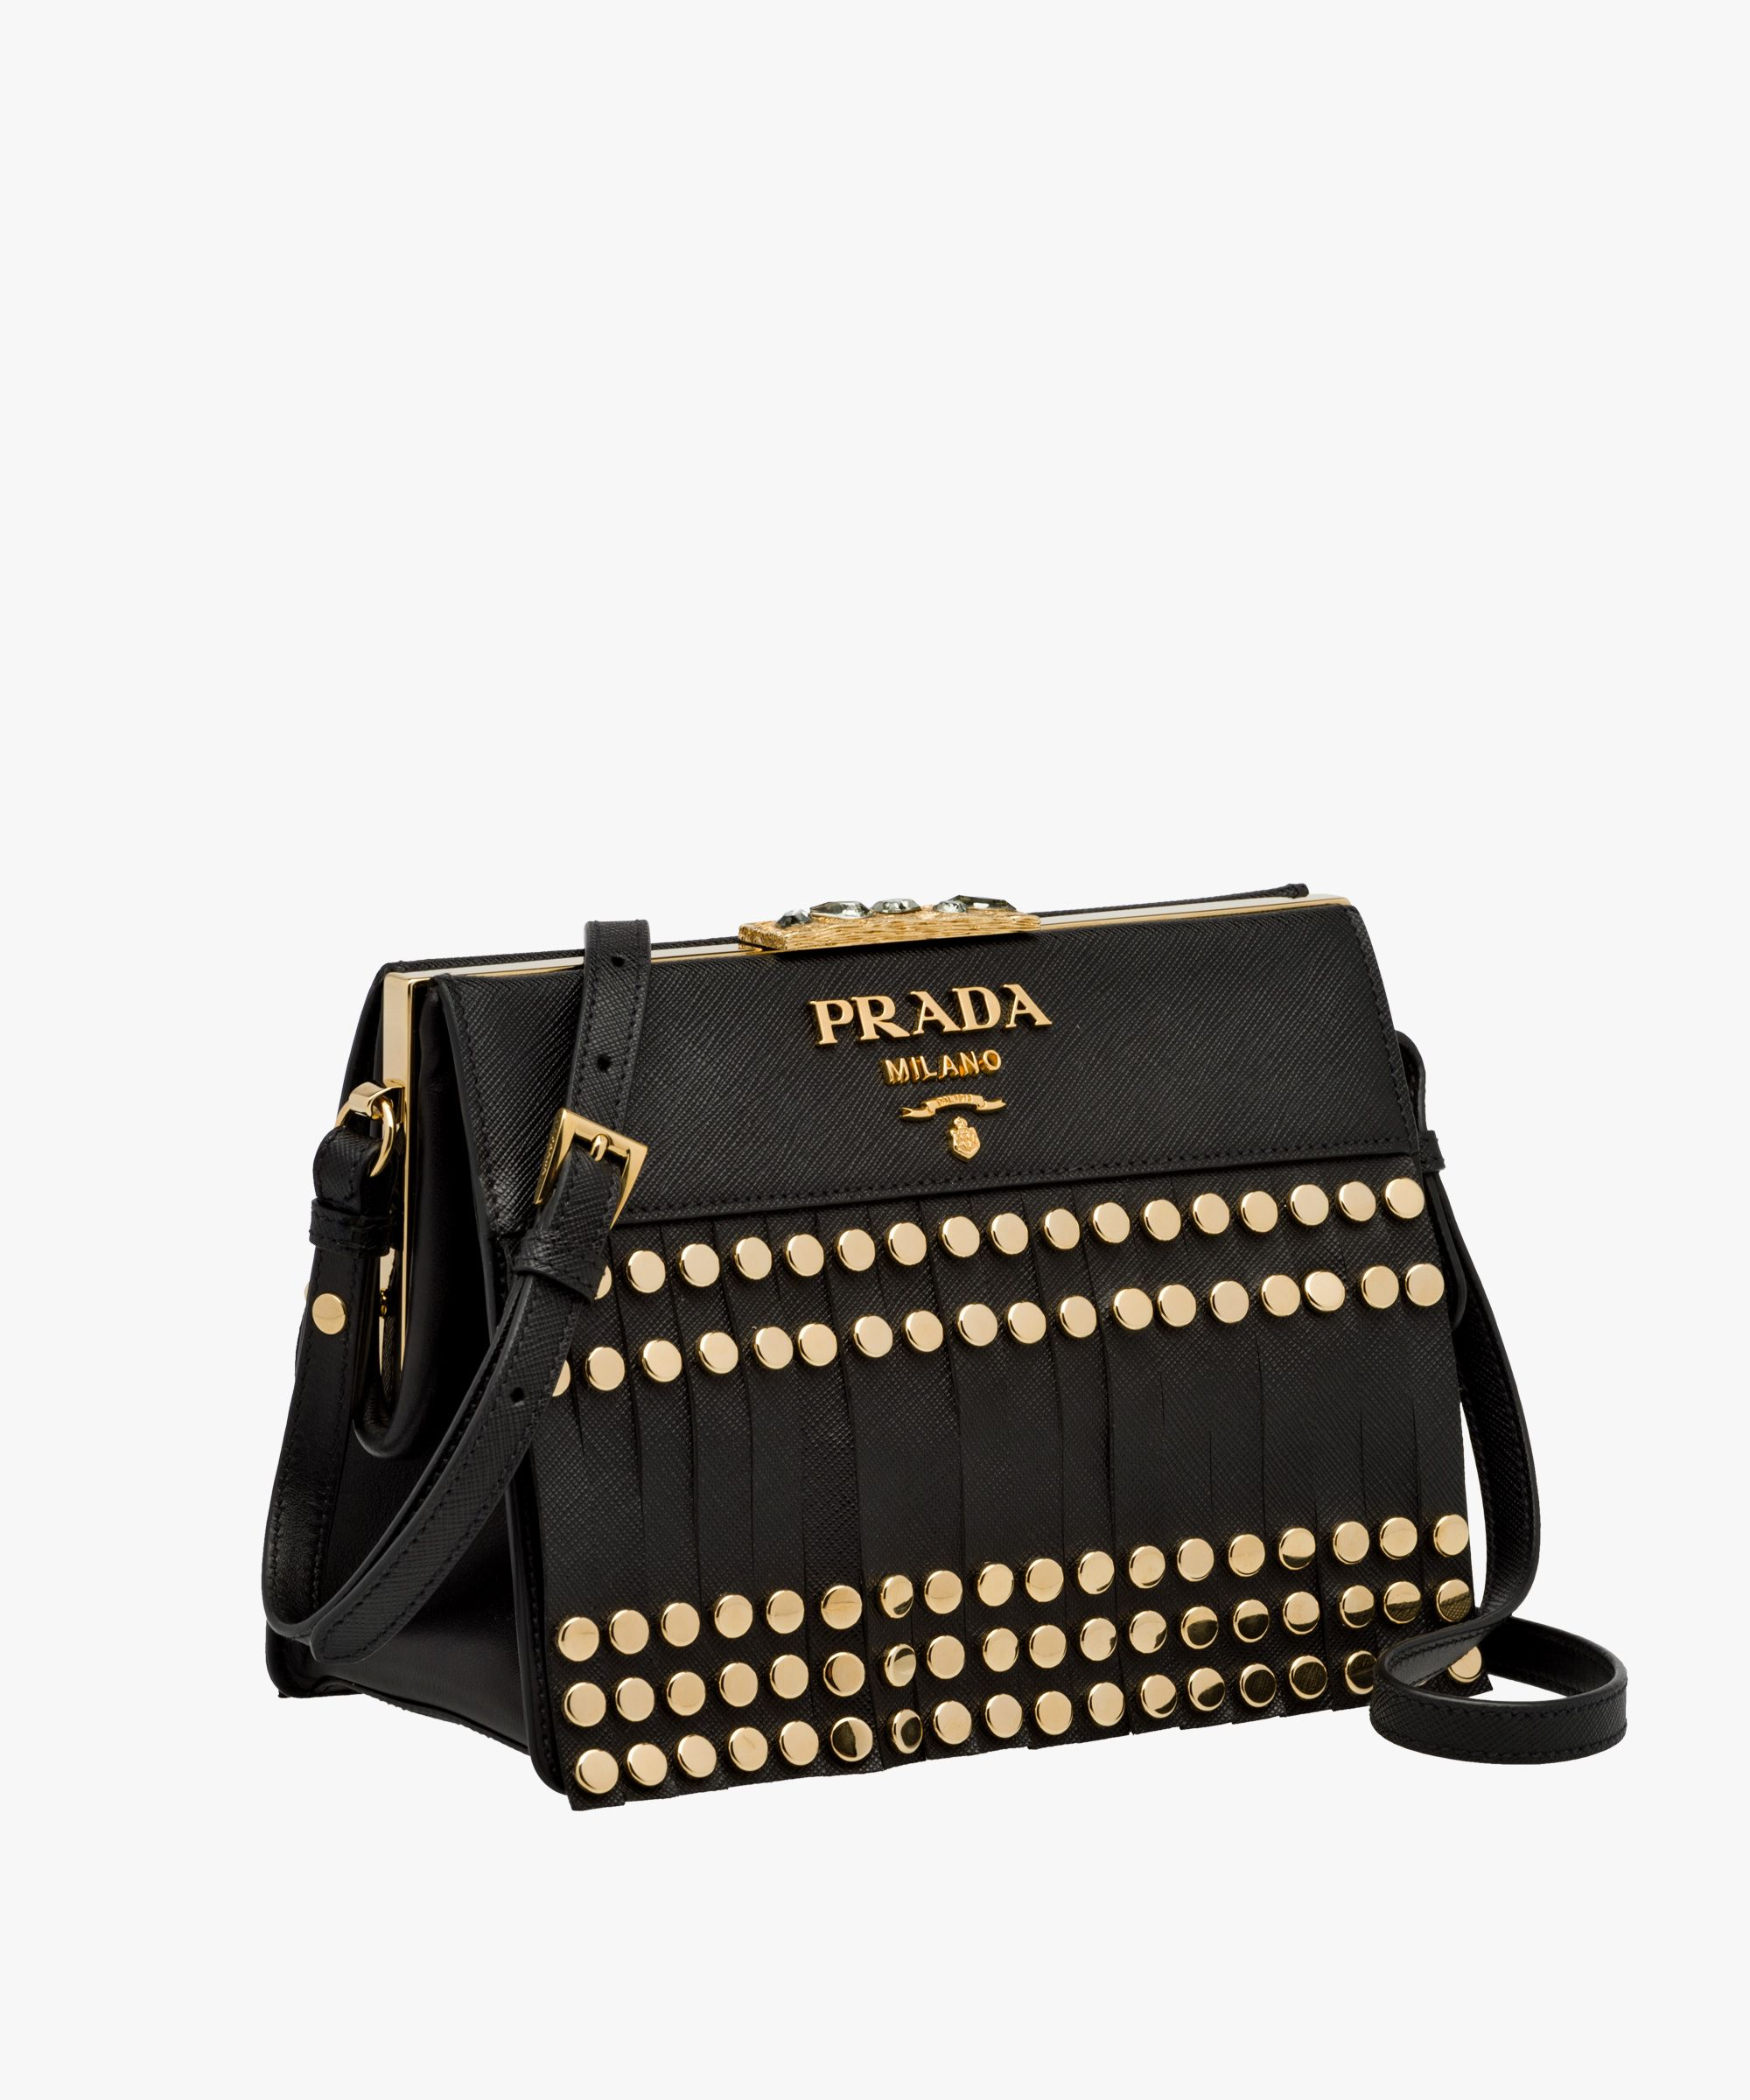 d46e79bf7088 Prada Idol Saffiano and calf leather shoulder bag with fringe and metal  studs